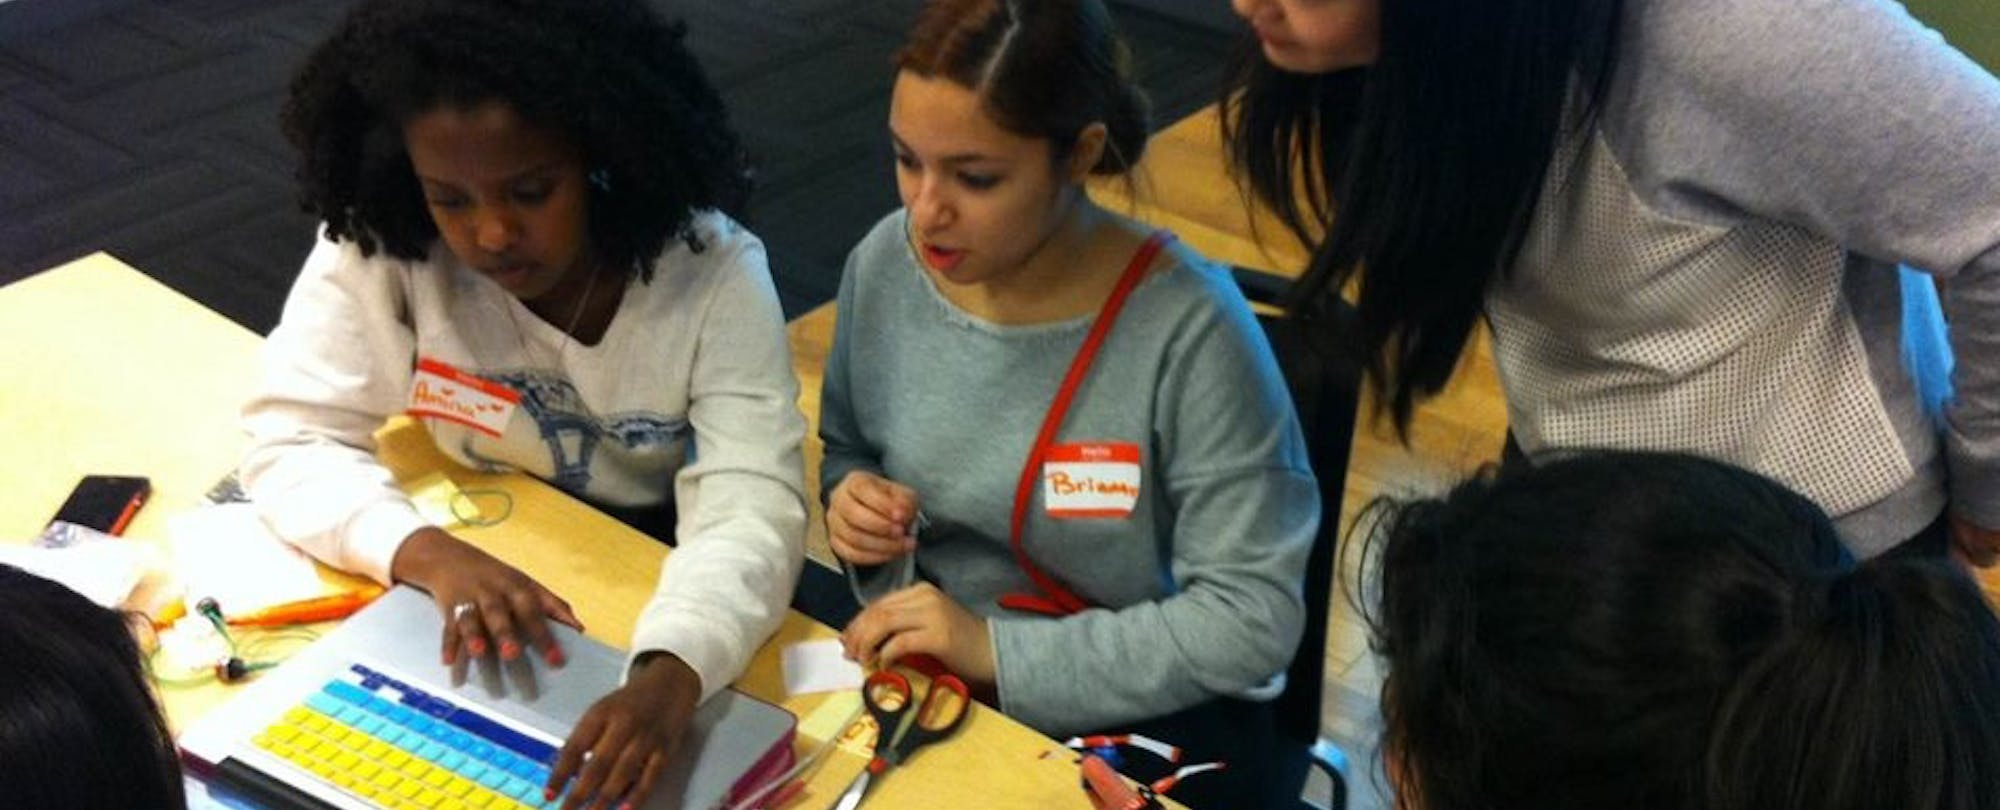 How This Homegrown Computer Science School Equips NYC Students With Real-World Skills